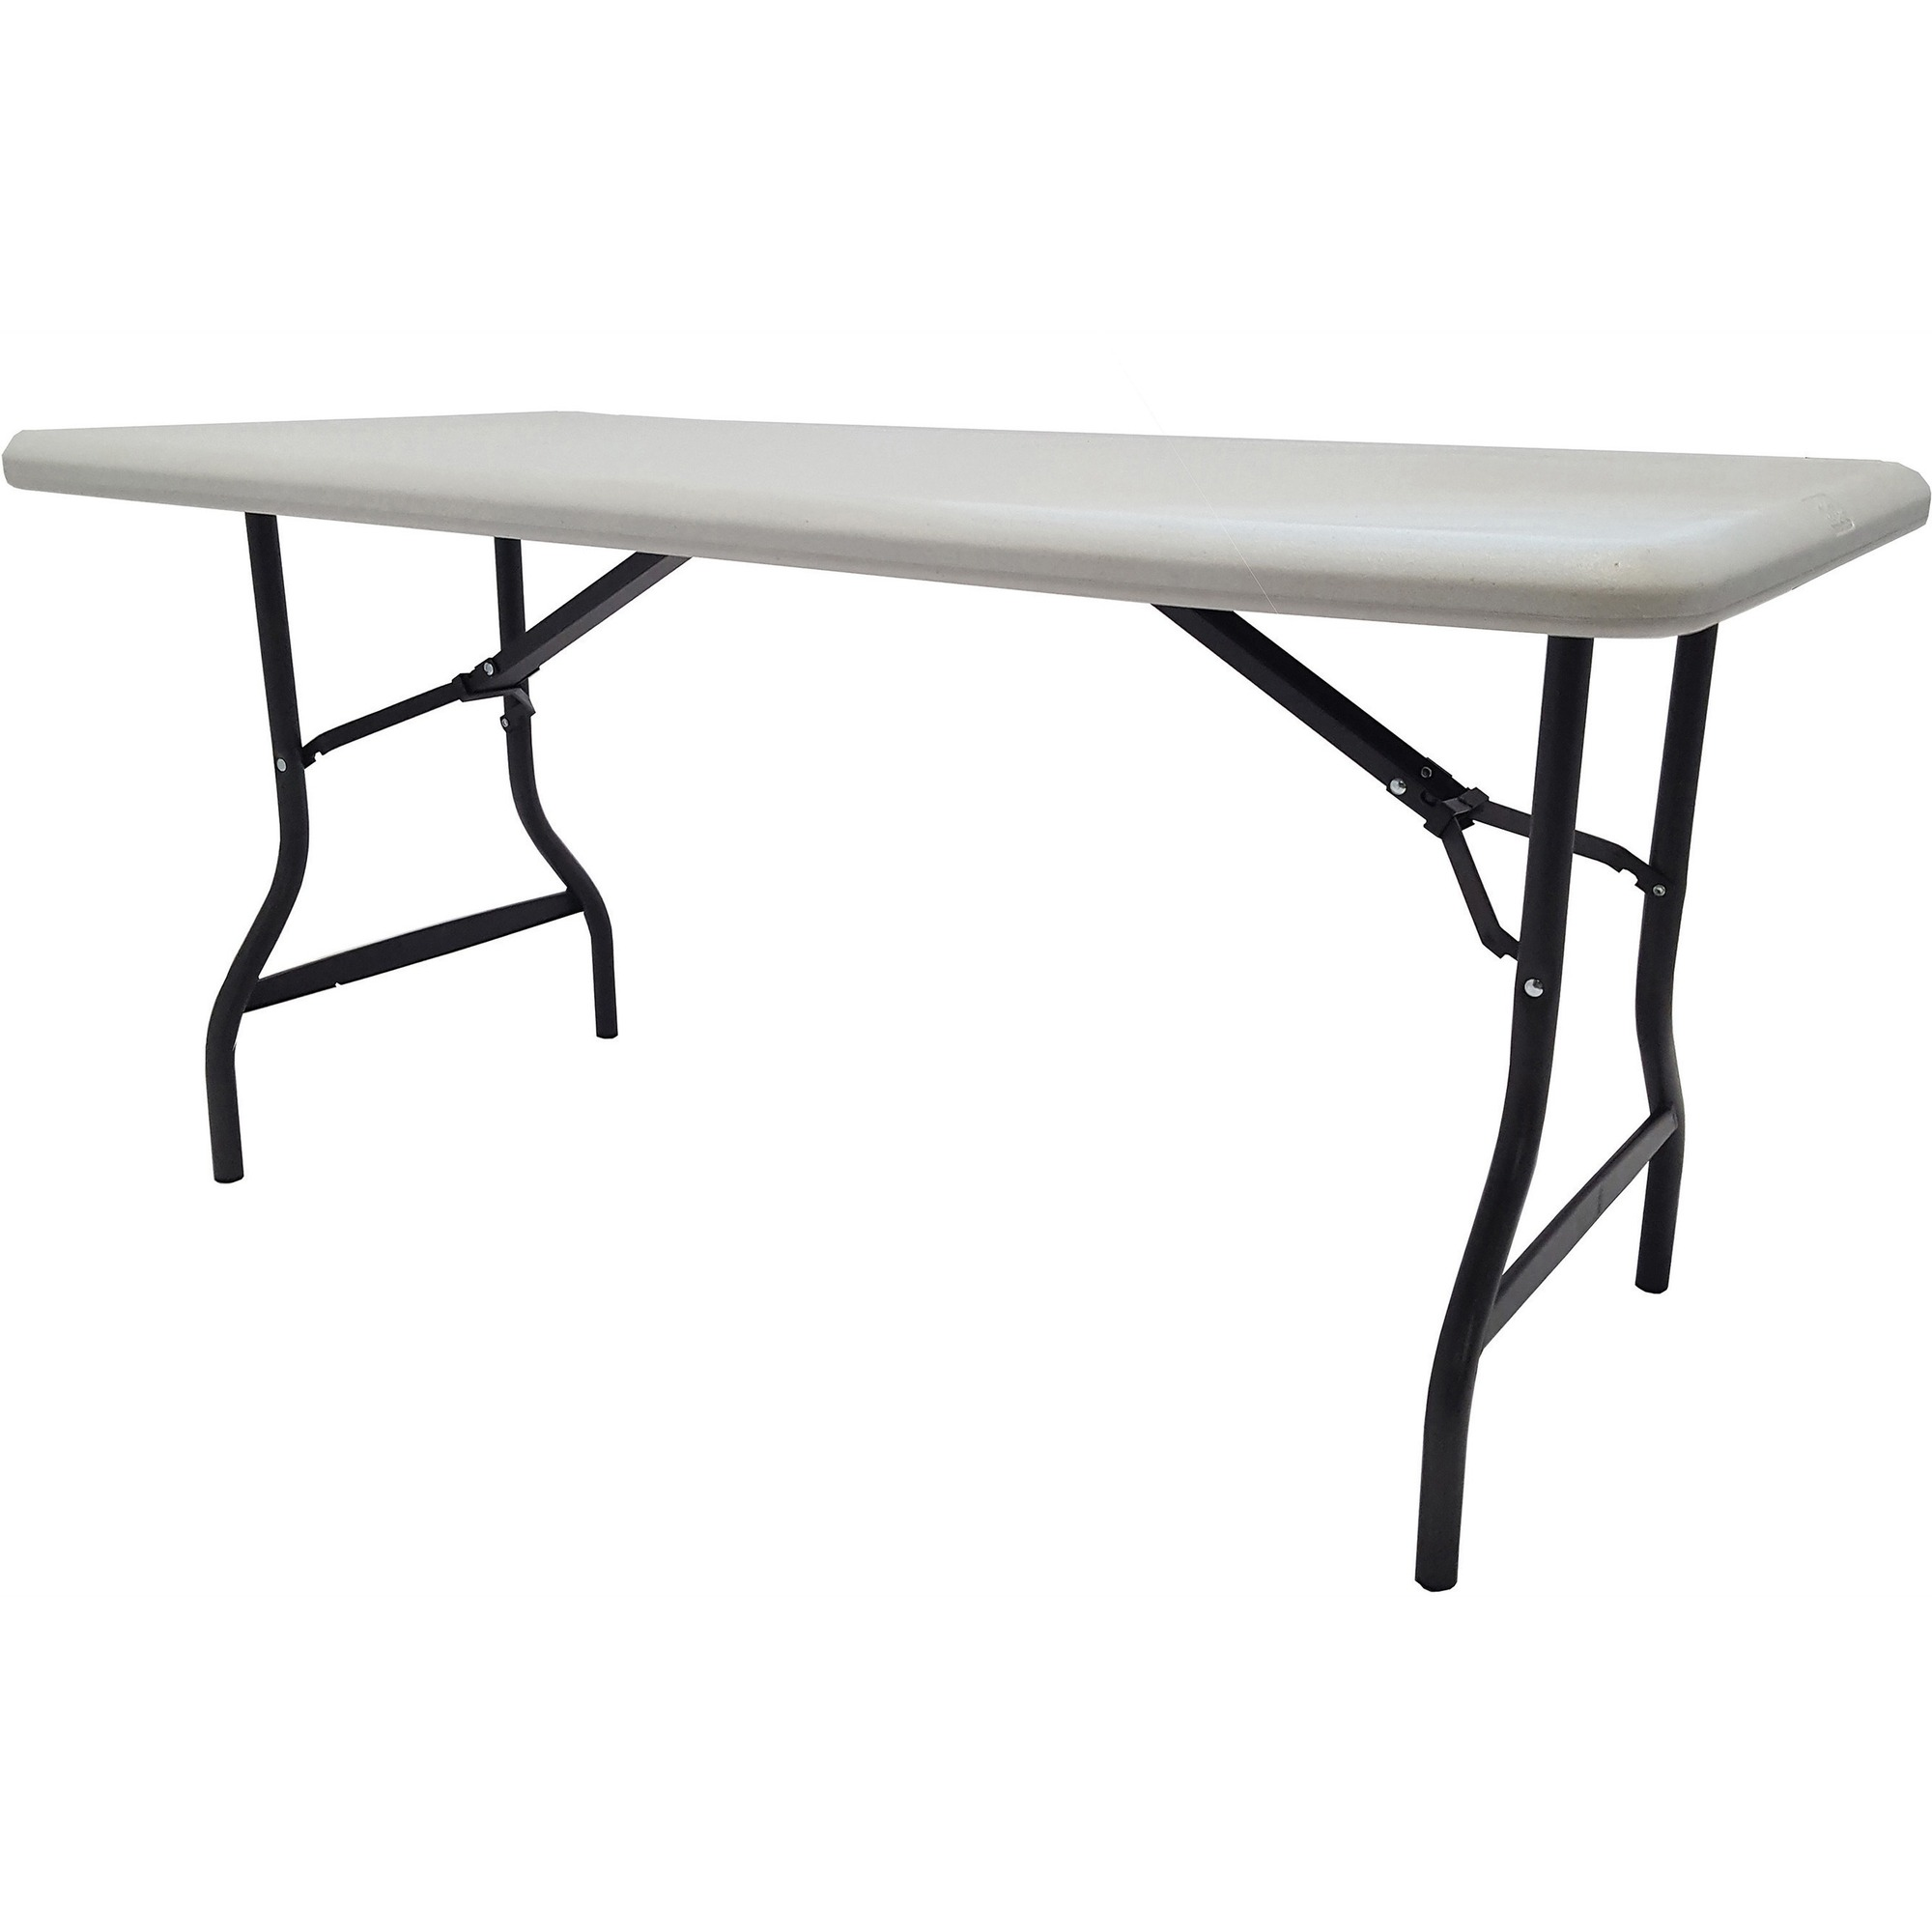 Enjoyable Iceberg Enterprises Llc Iceberg Indestructable Too 1200 Series Folding Table Rectangle Top 30 Table Top Length X 60 Table Top Width X 1 Table Top Onthecornerstone Fun Painted Chair Ideas Images Onthecornerstoneorg